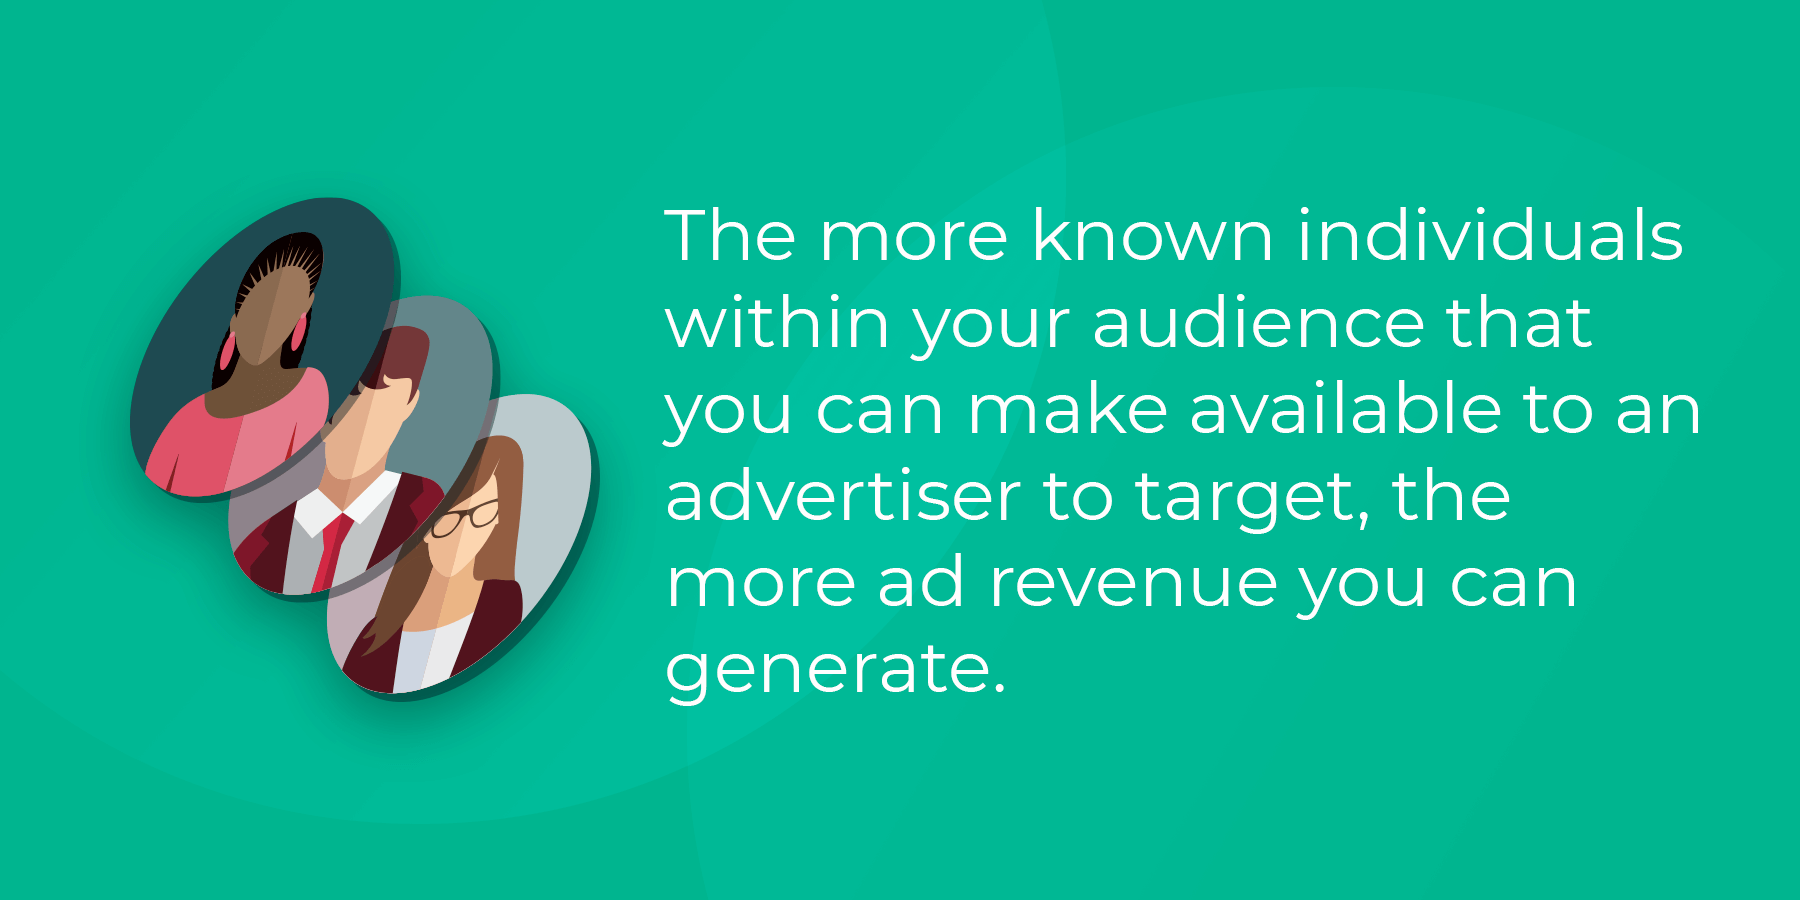 The more known individuals within your audience that you can make available to an advertiser to target, the more ad revenue you can generate.